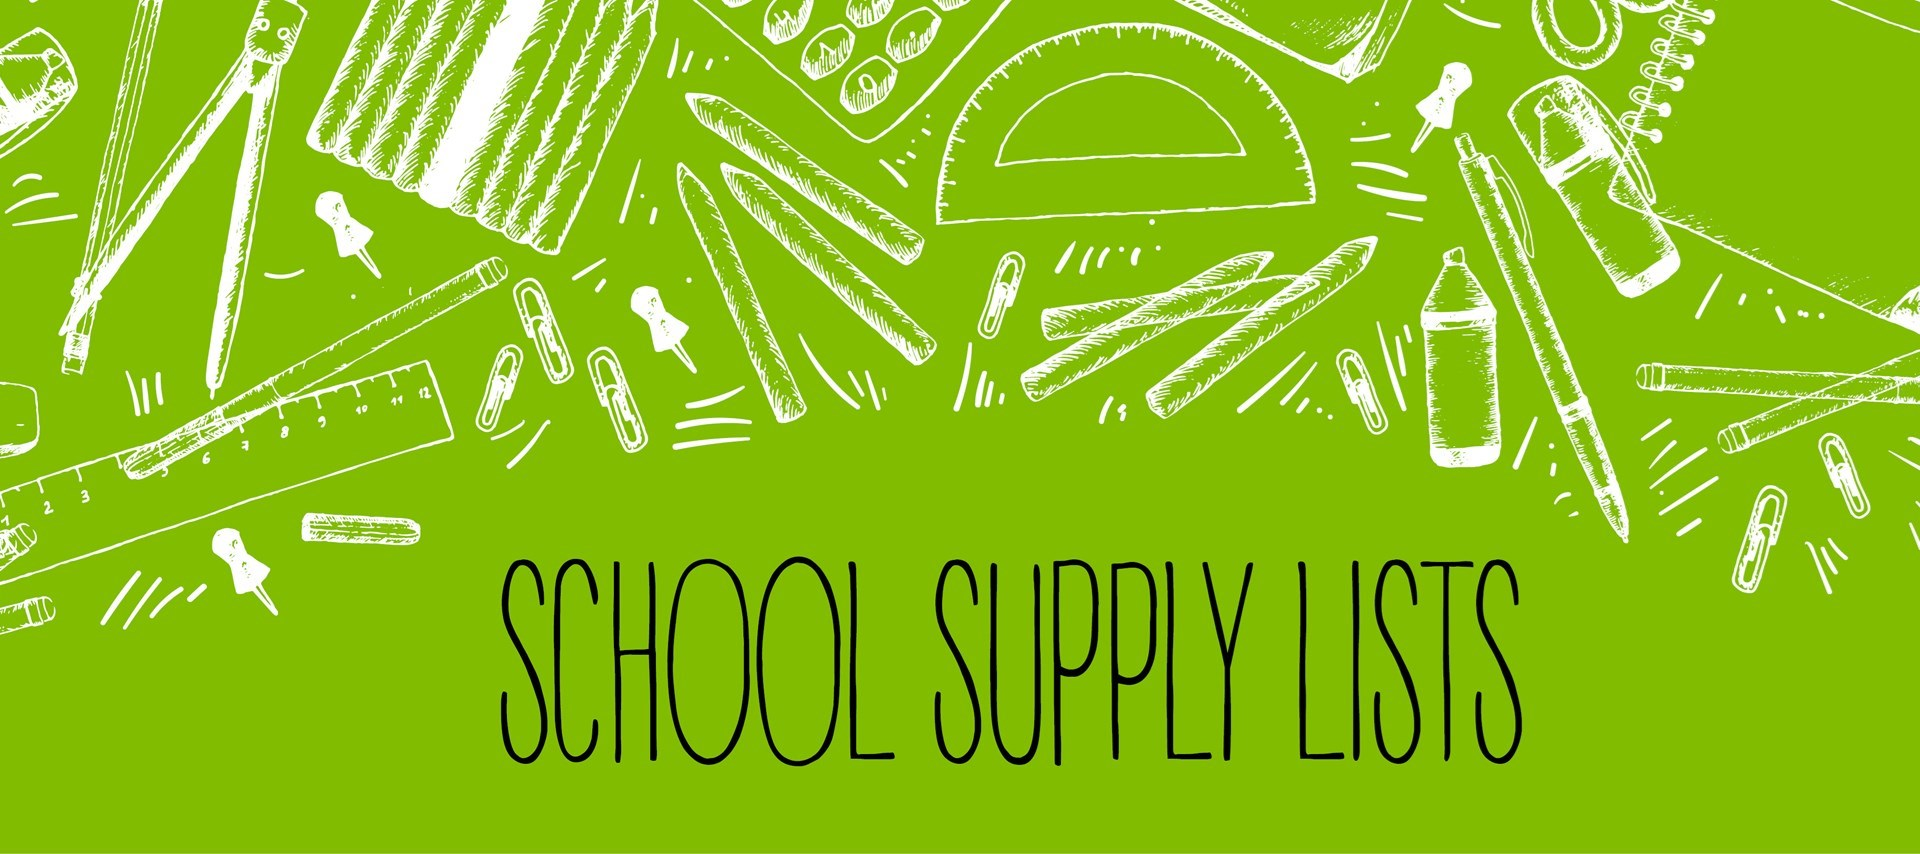 Caswell Community School Supply Lists